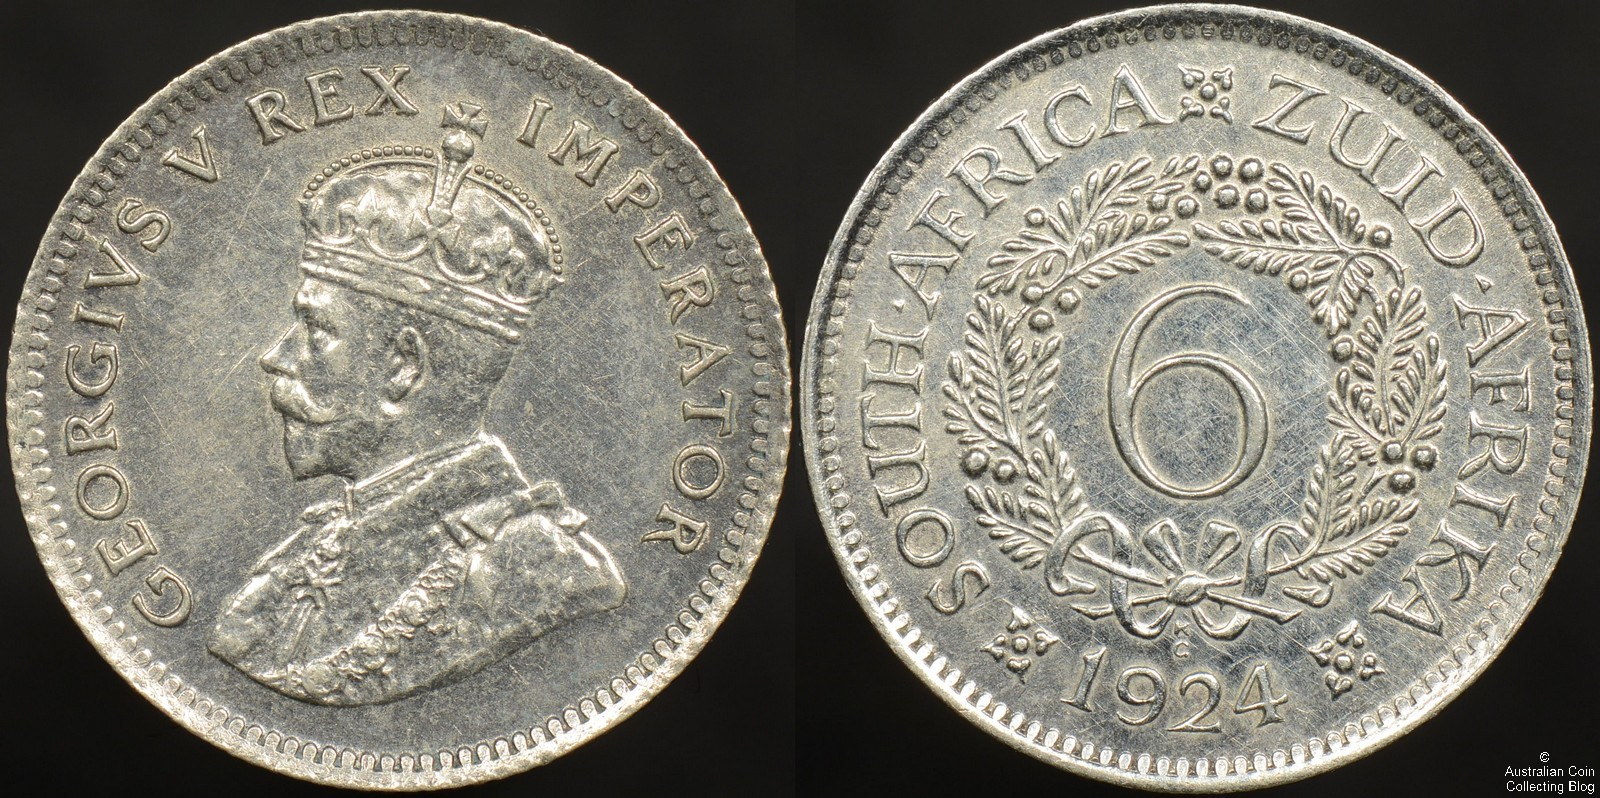 South Africa 1928 6d